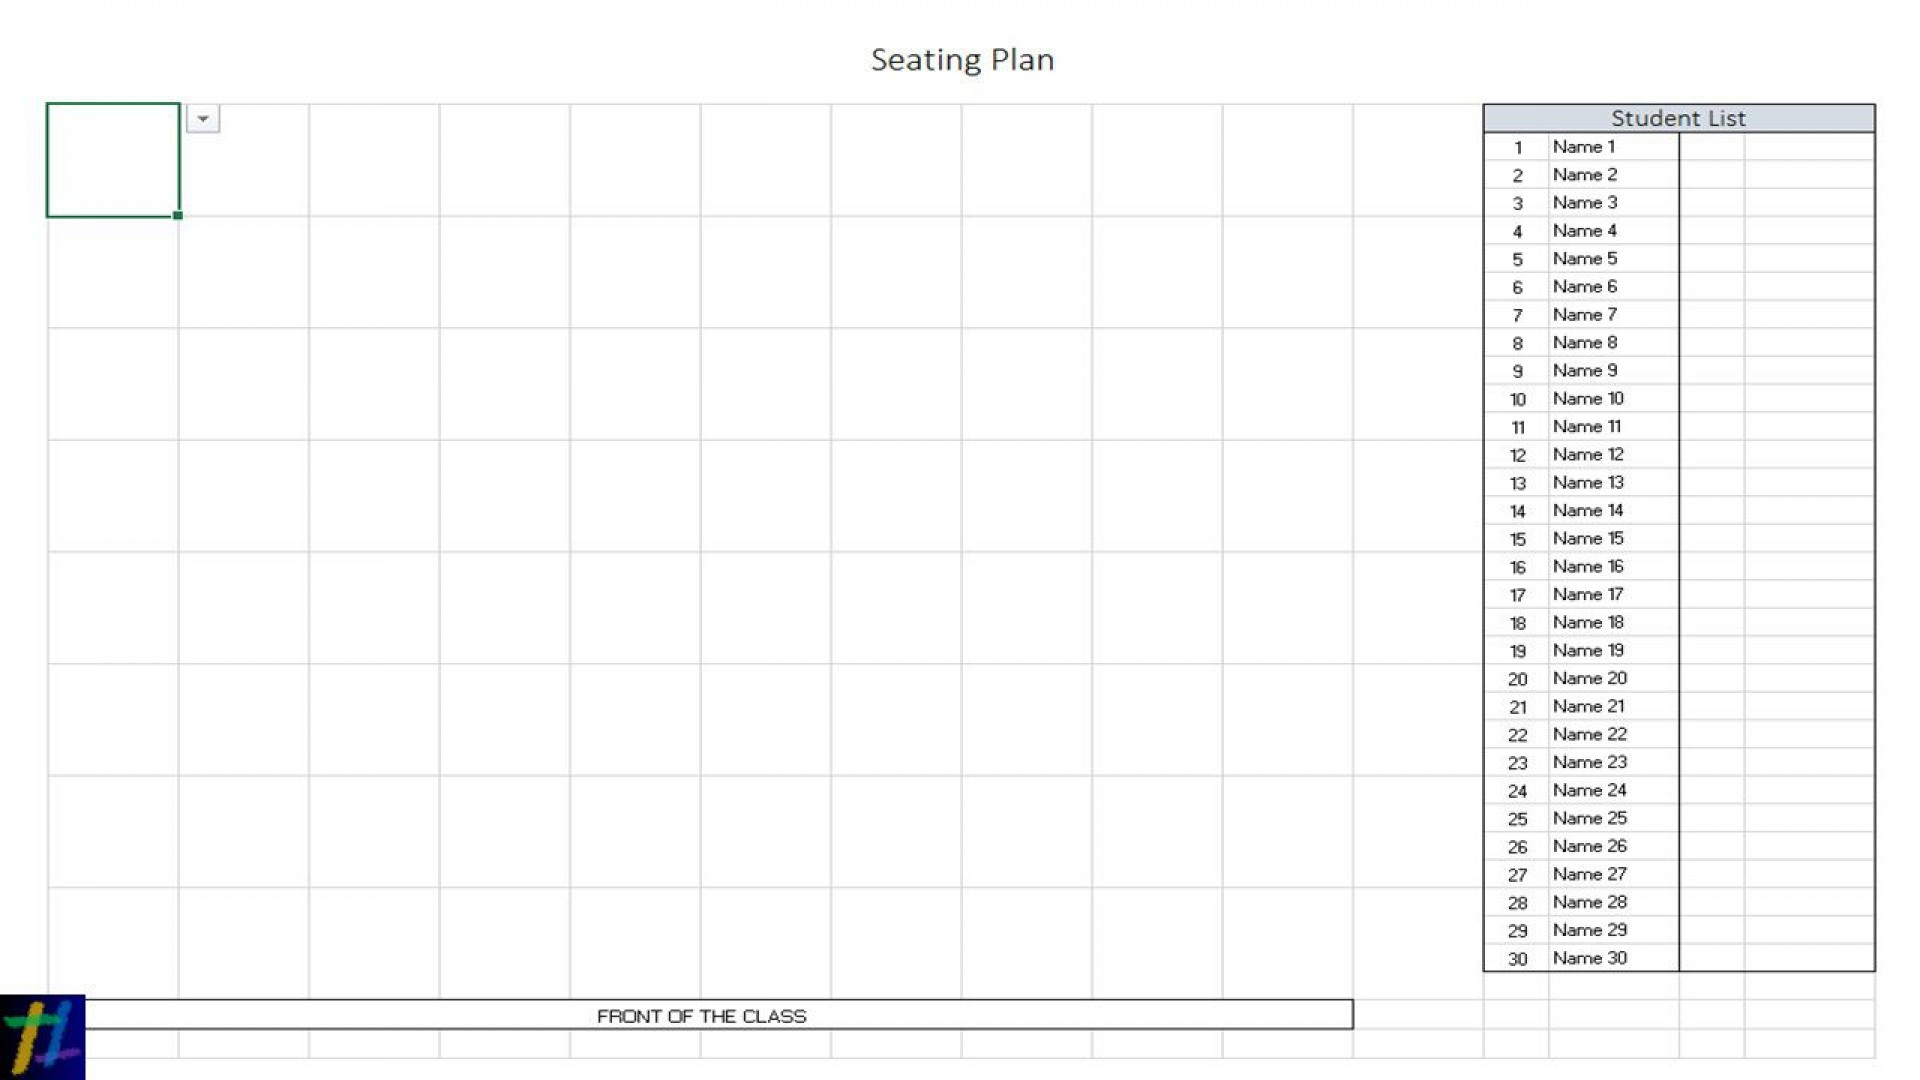 002 Fascinating Seating Chart Template Excel High Def  Wedding Plan Free Table Microsoft1920